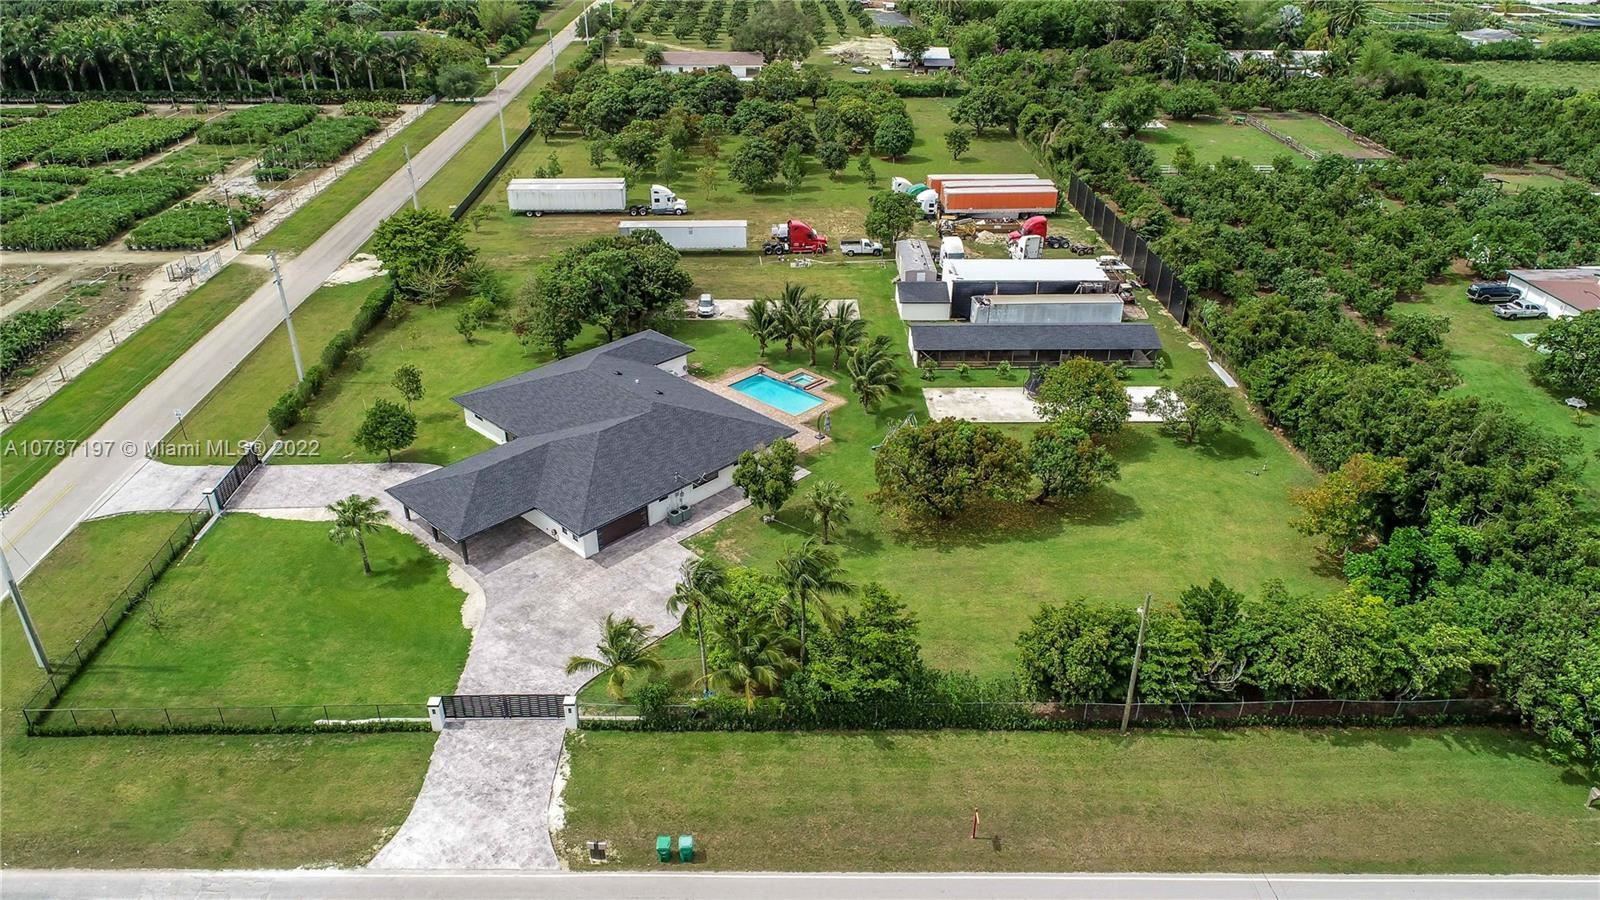 20710 SW 248th St, Homestead, FL 33031 - #: A10787197